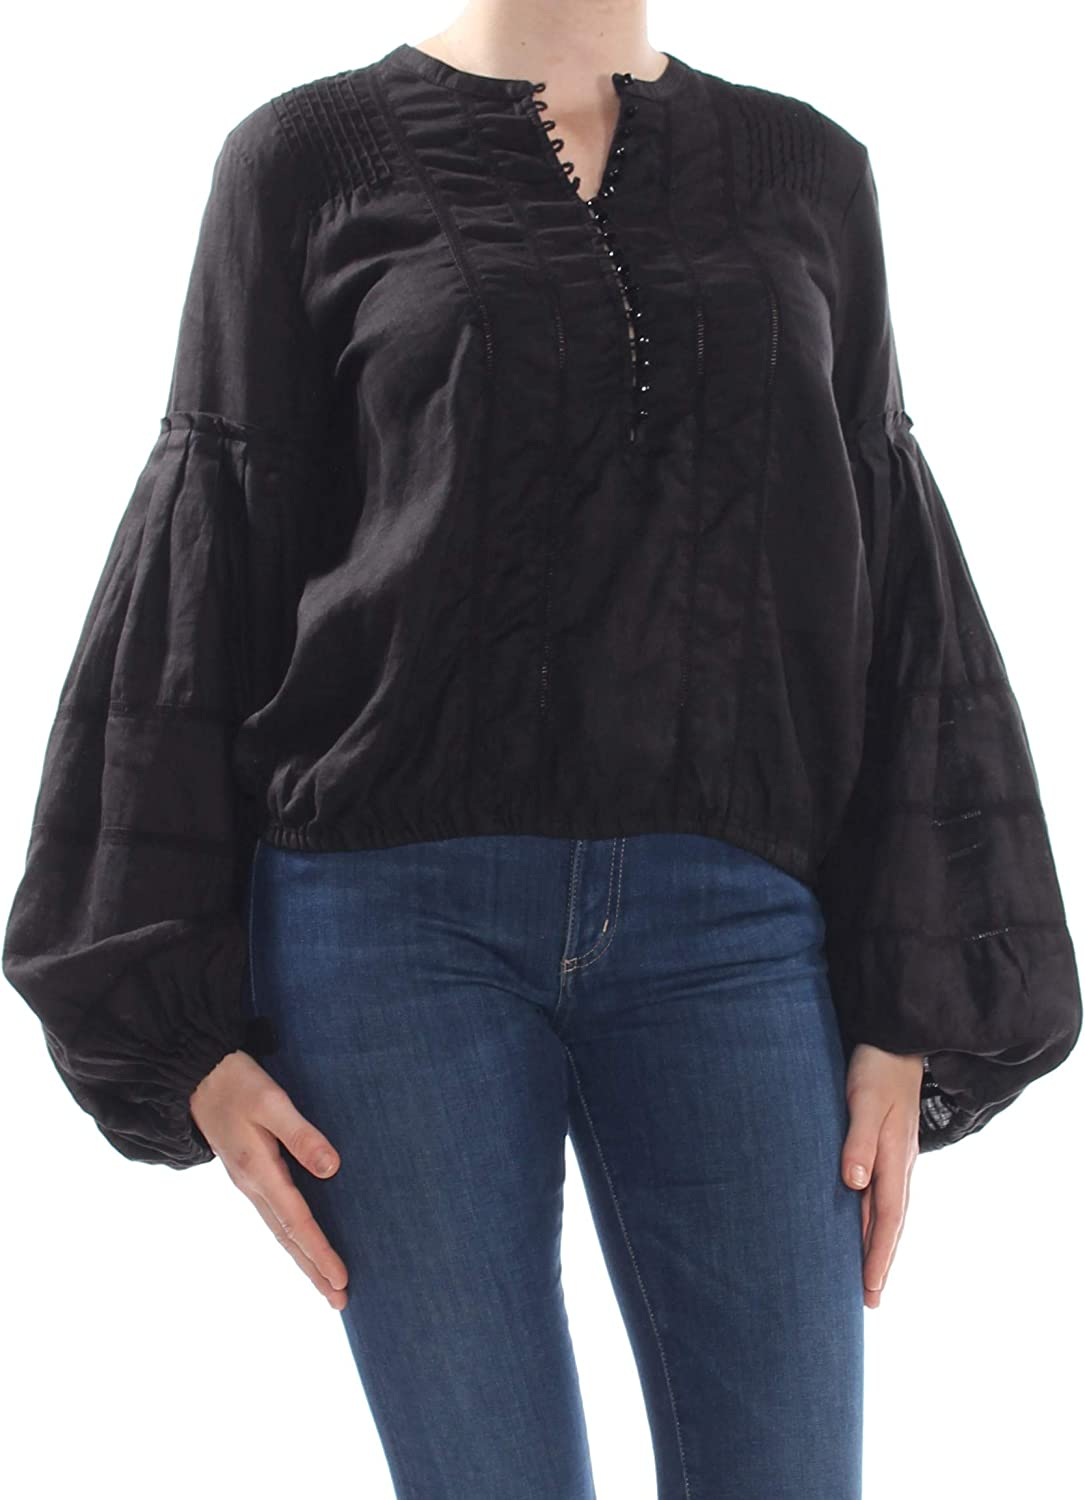 Free People Womens Bell Beauty products Blouse Sleeve Ranking TOP10 Peasant